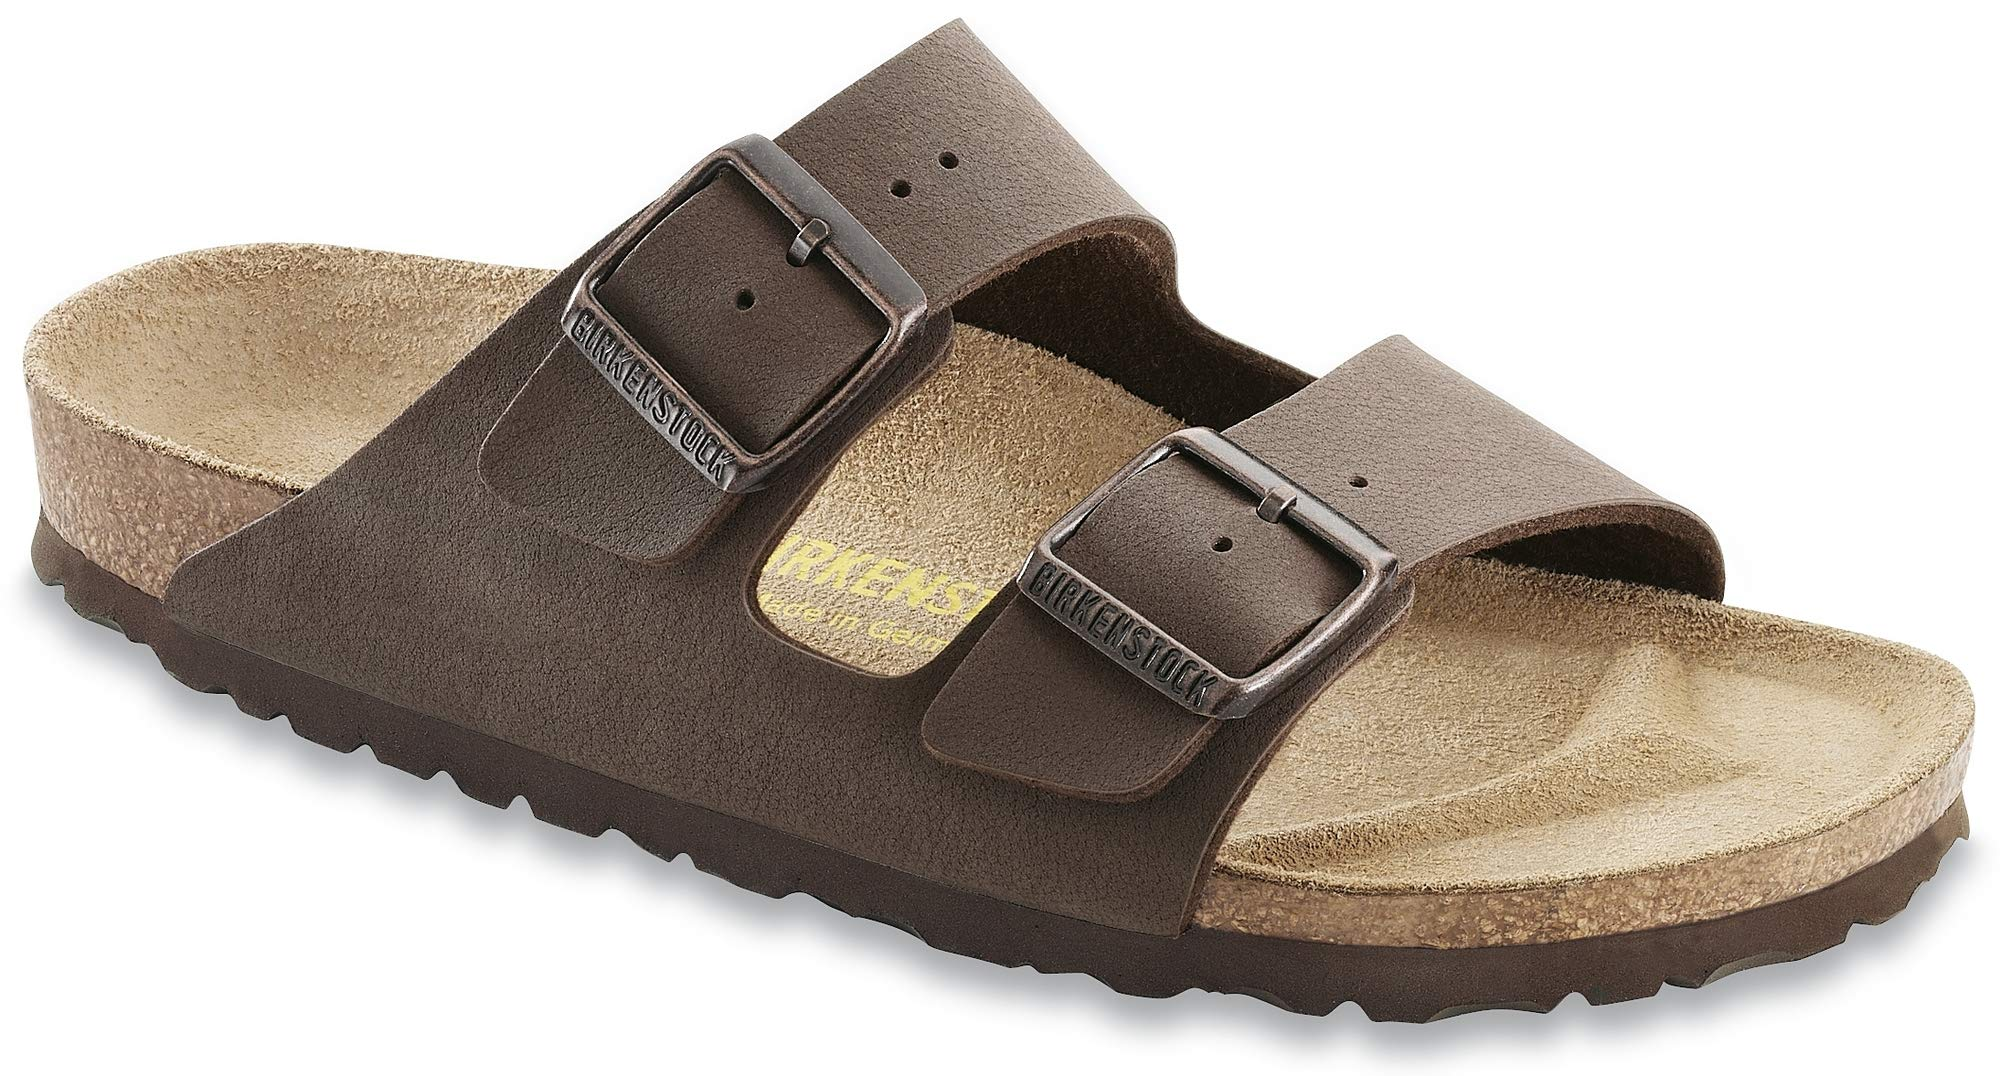 Birkenstock Women's Arizona Slip On Sandal (0151183) by Birkenstock